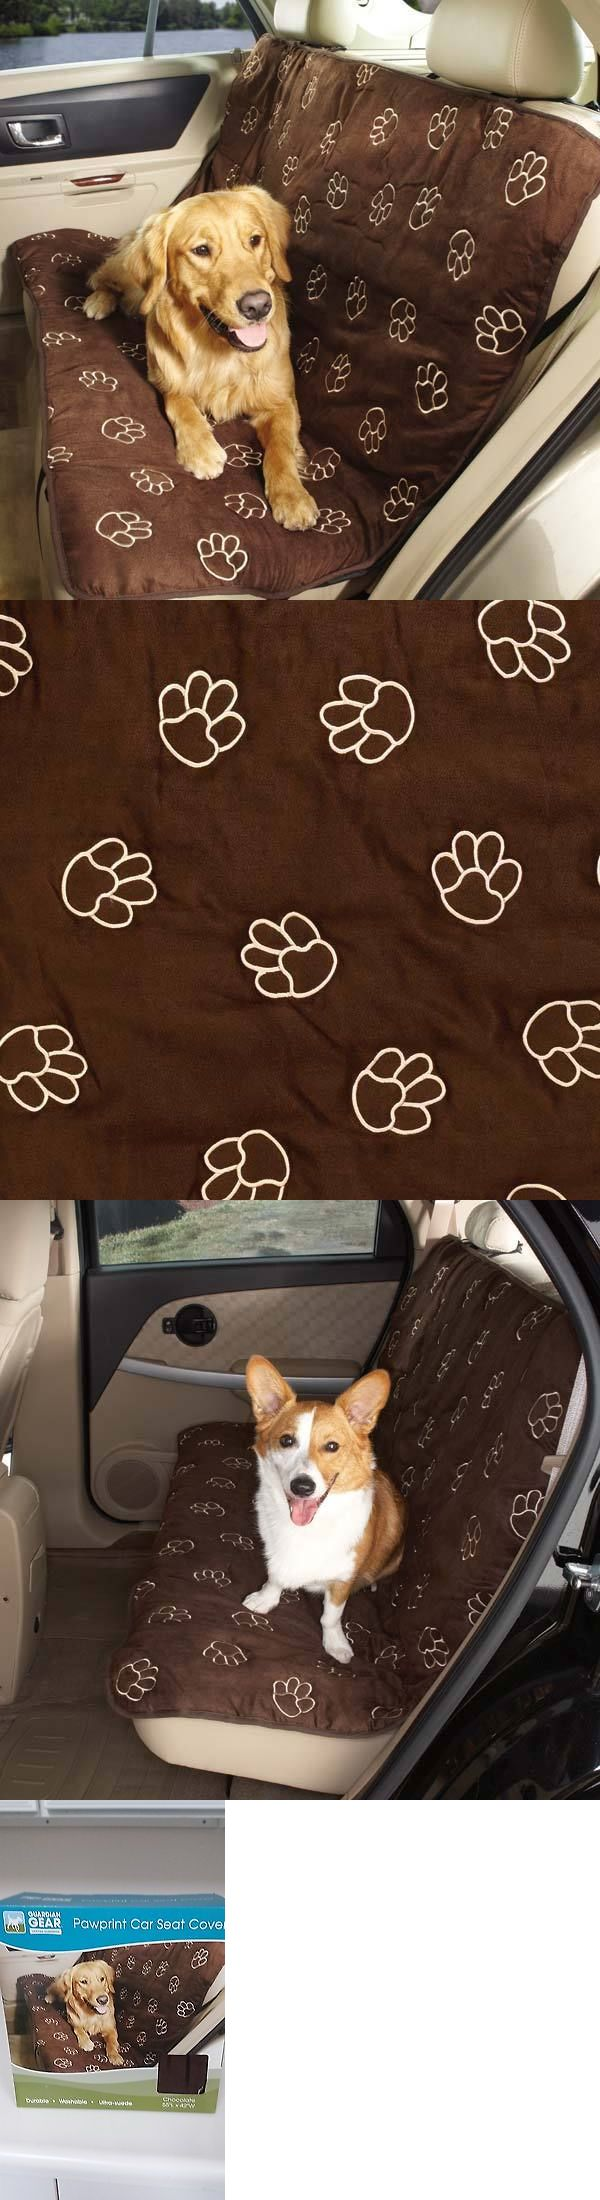 Car Seat Covers 117426: Guardian Gear Pawprint Design Pet Car Seat Cover Chocolate For Dogs And Cats -> BUY IT NOW ONLY: $40.99 on eBay!